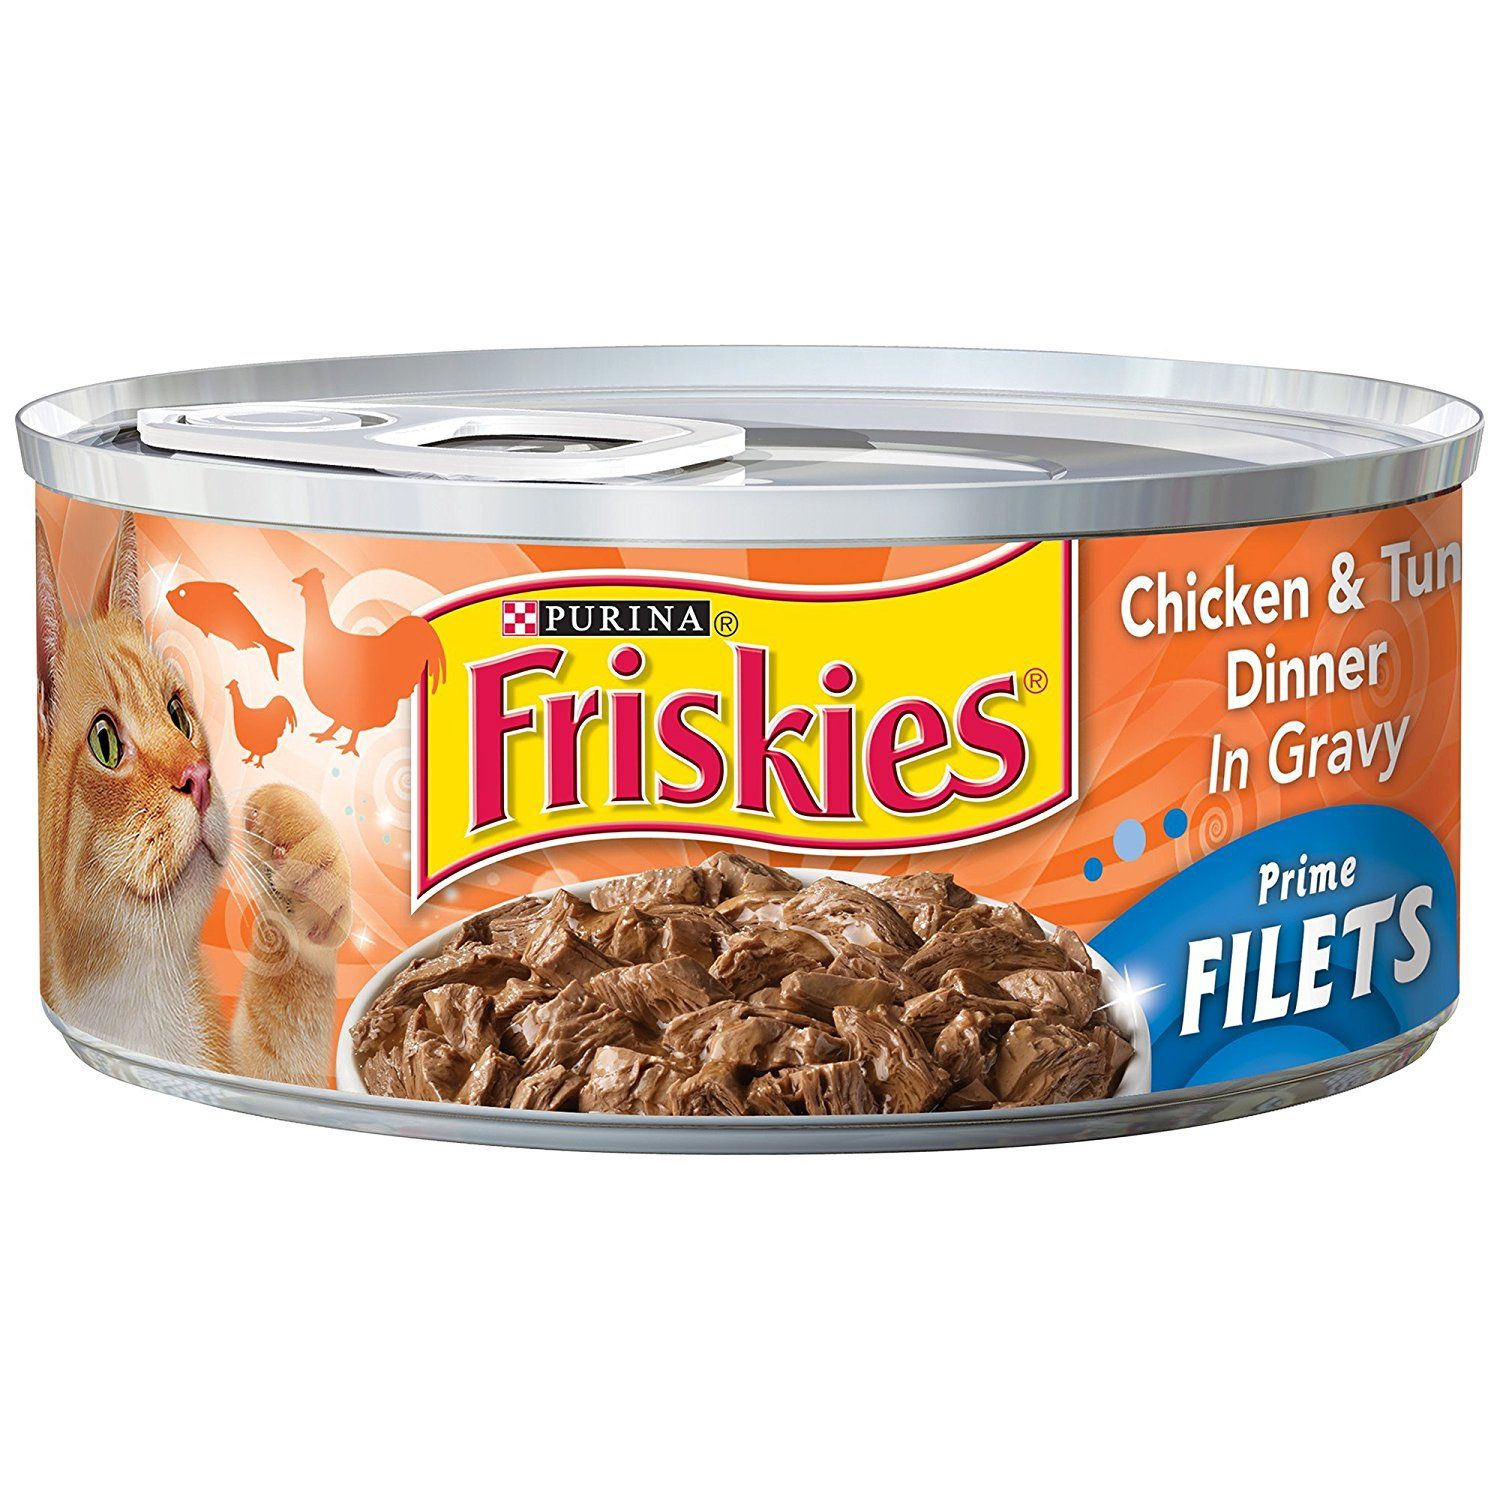 Friskies prime filets chicken and tuna in gravy canned cat